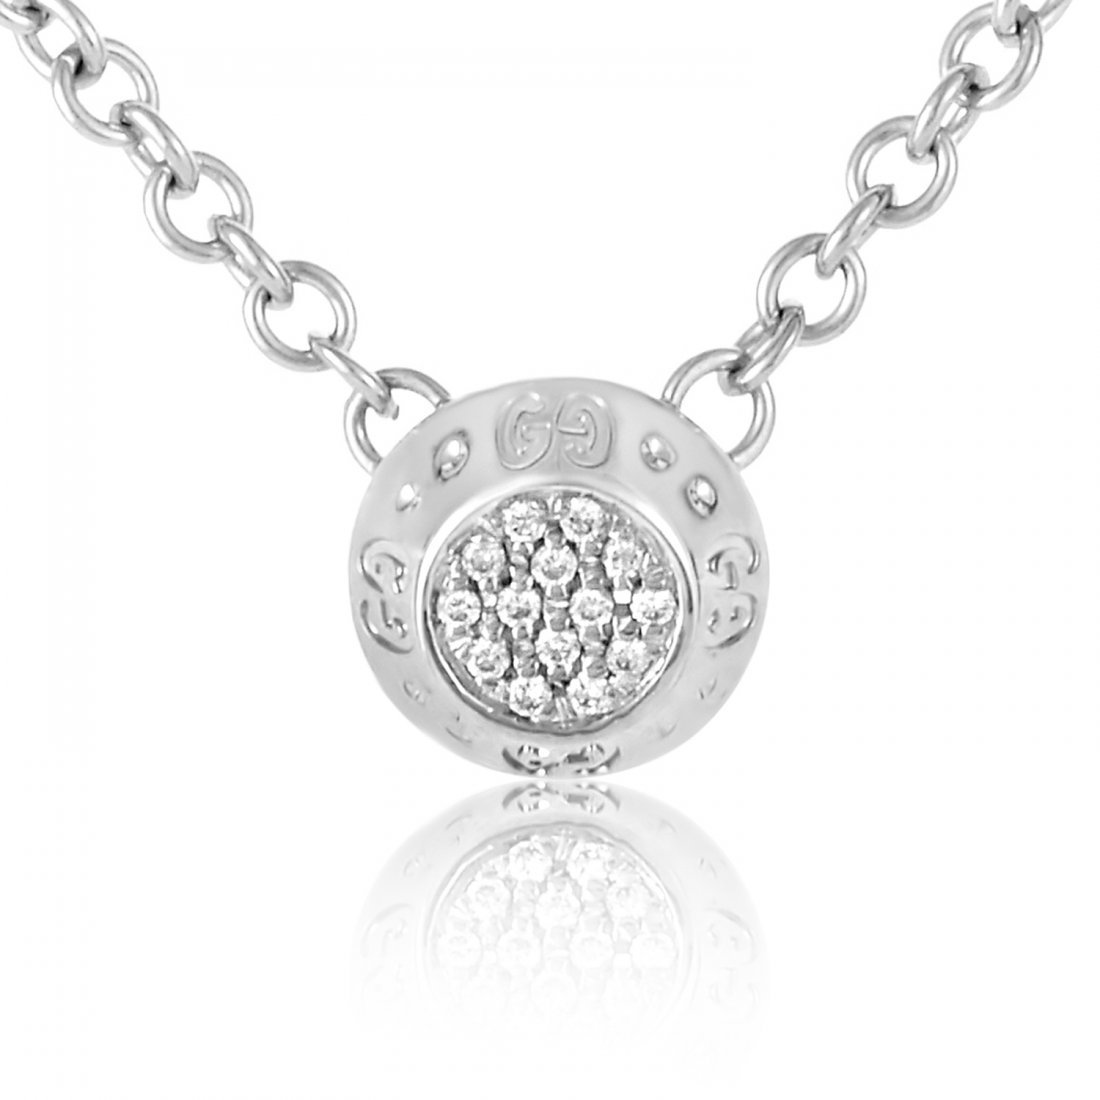 Gucci 18K White Gold Diamond Pave Pendant Necklace